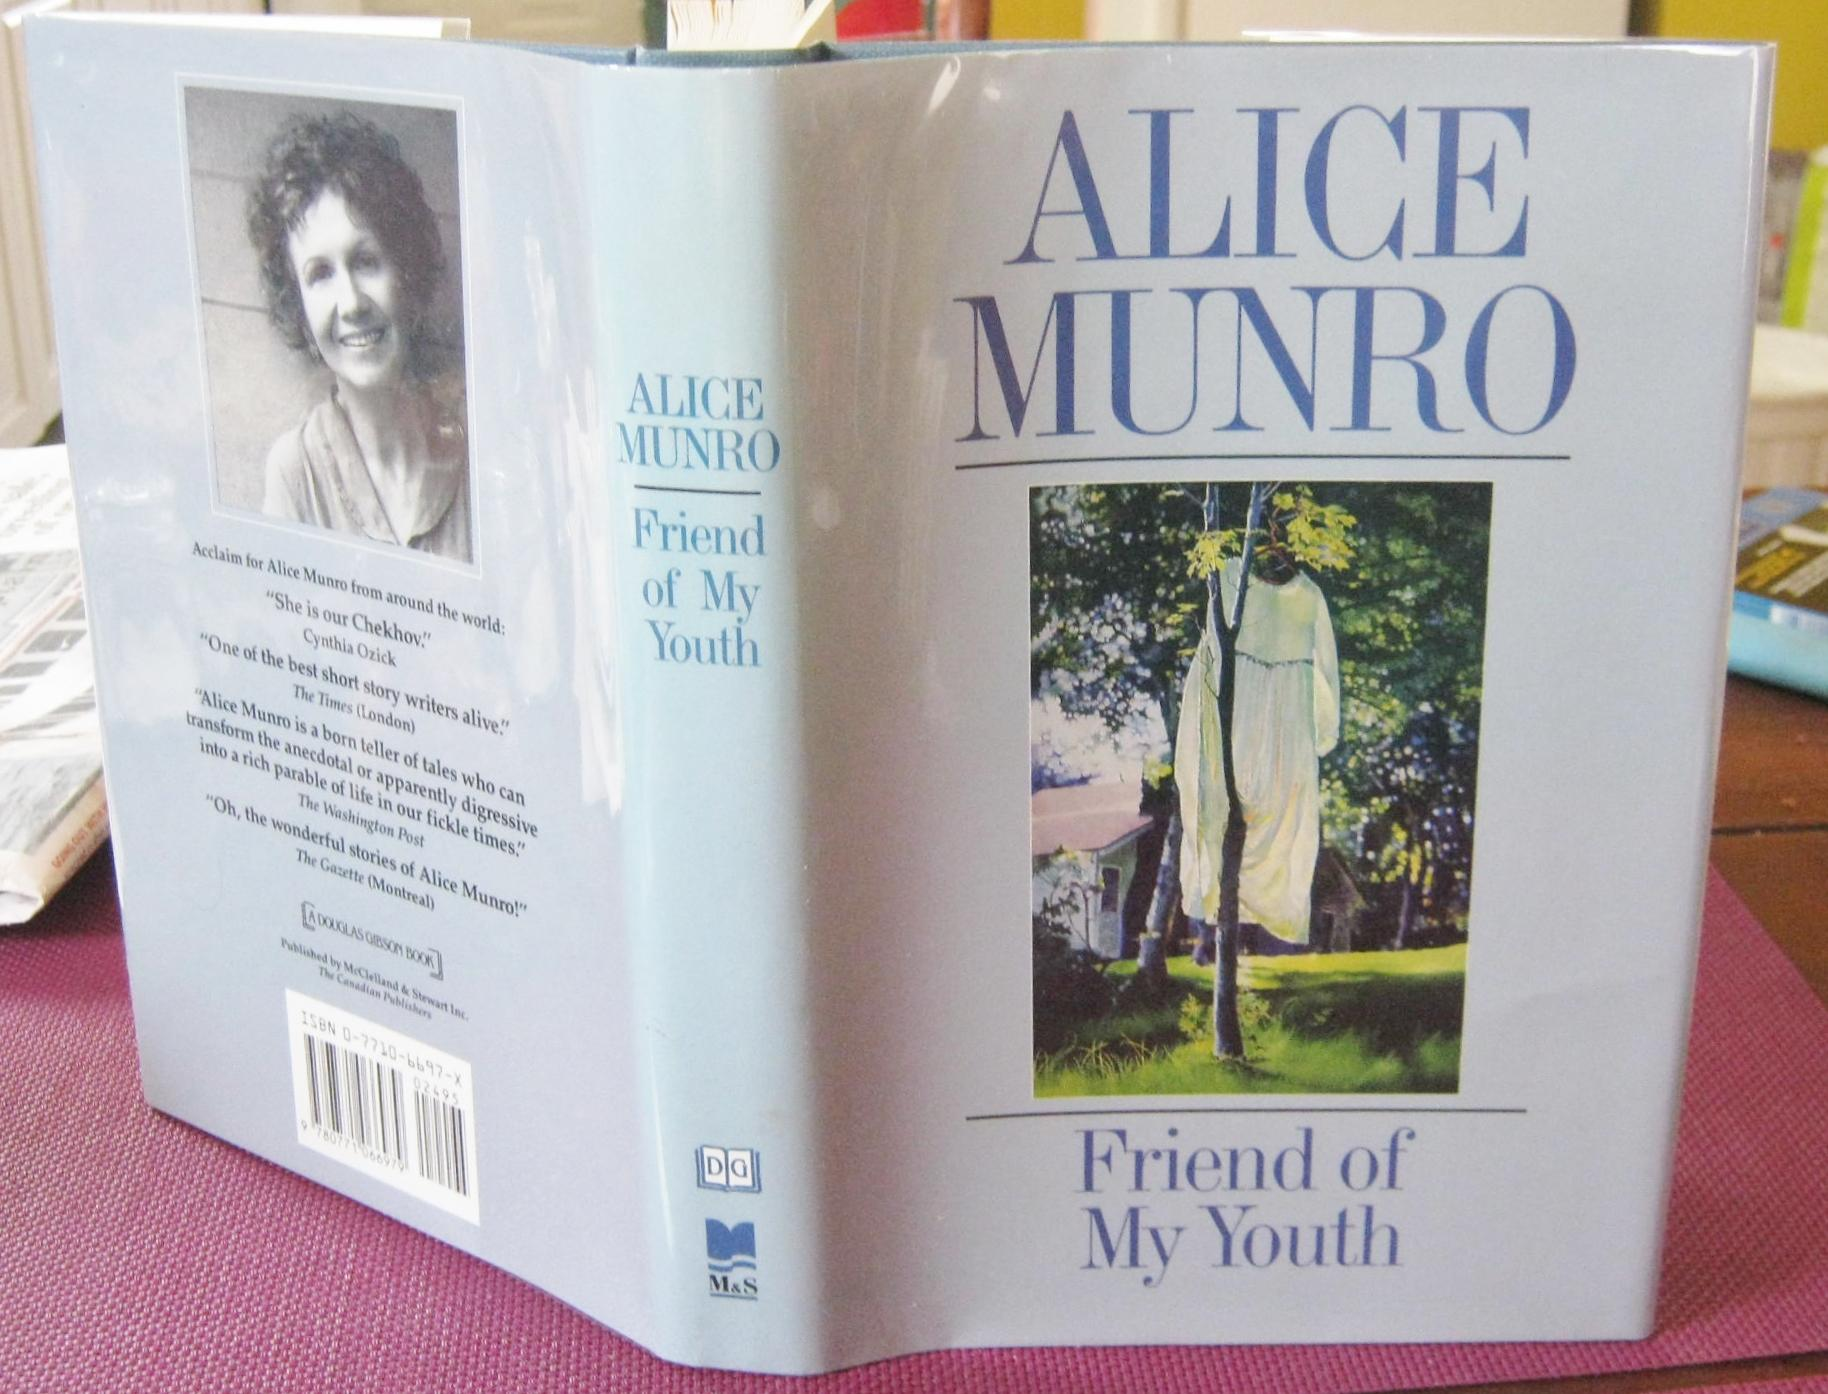 Friend Of My Youth Stories Inscribed By Munro Alice Hardcover 1990 First Canadian Printing Inscribed By Author Steven Temple Books Abac Ilab Ioba